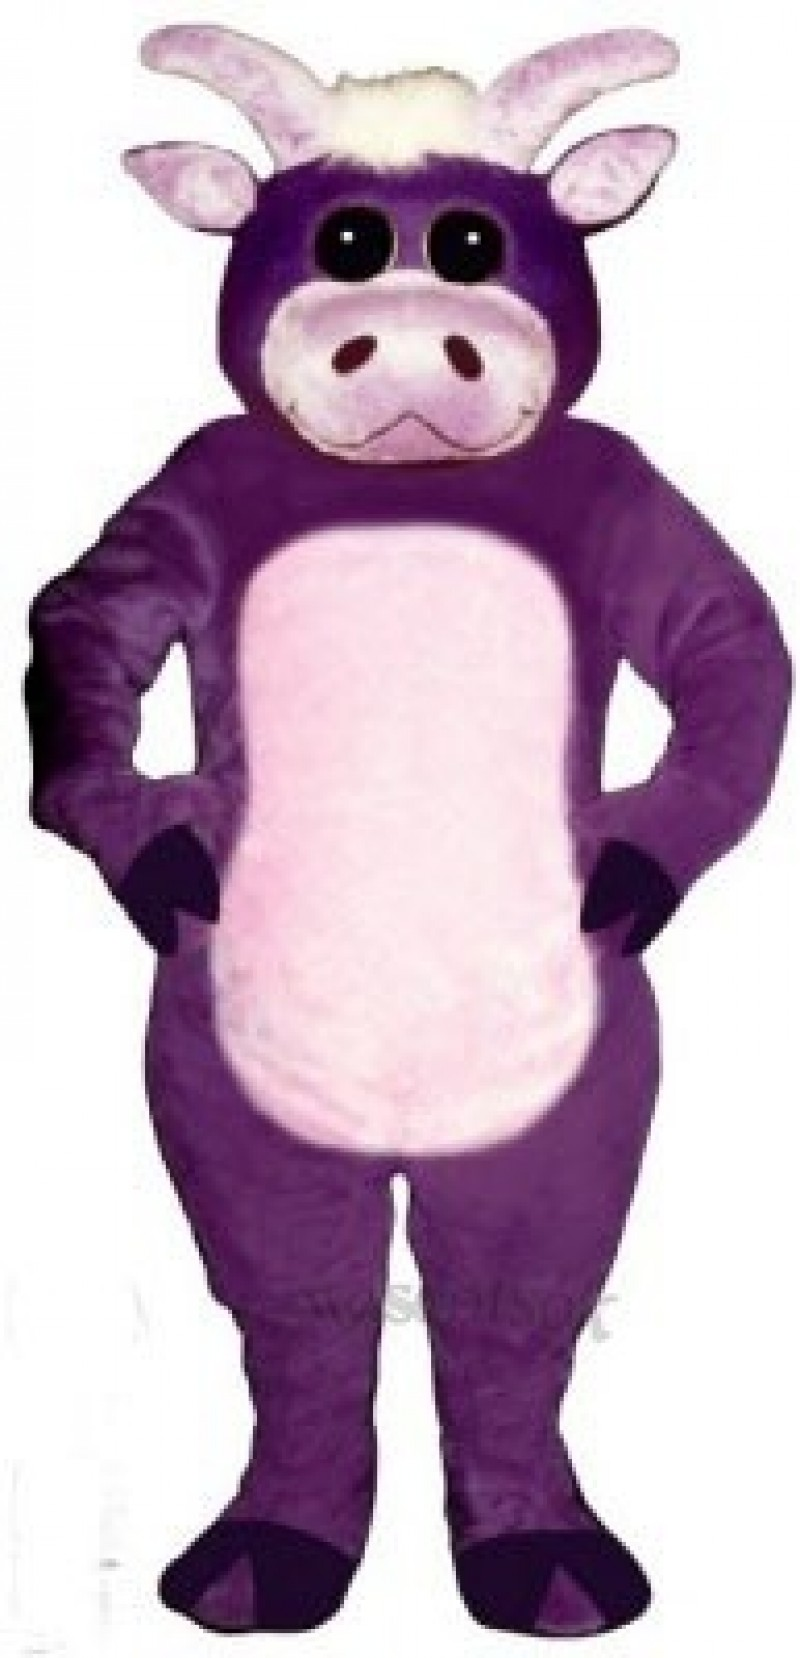 Cute Purple Bull Mascot Costume